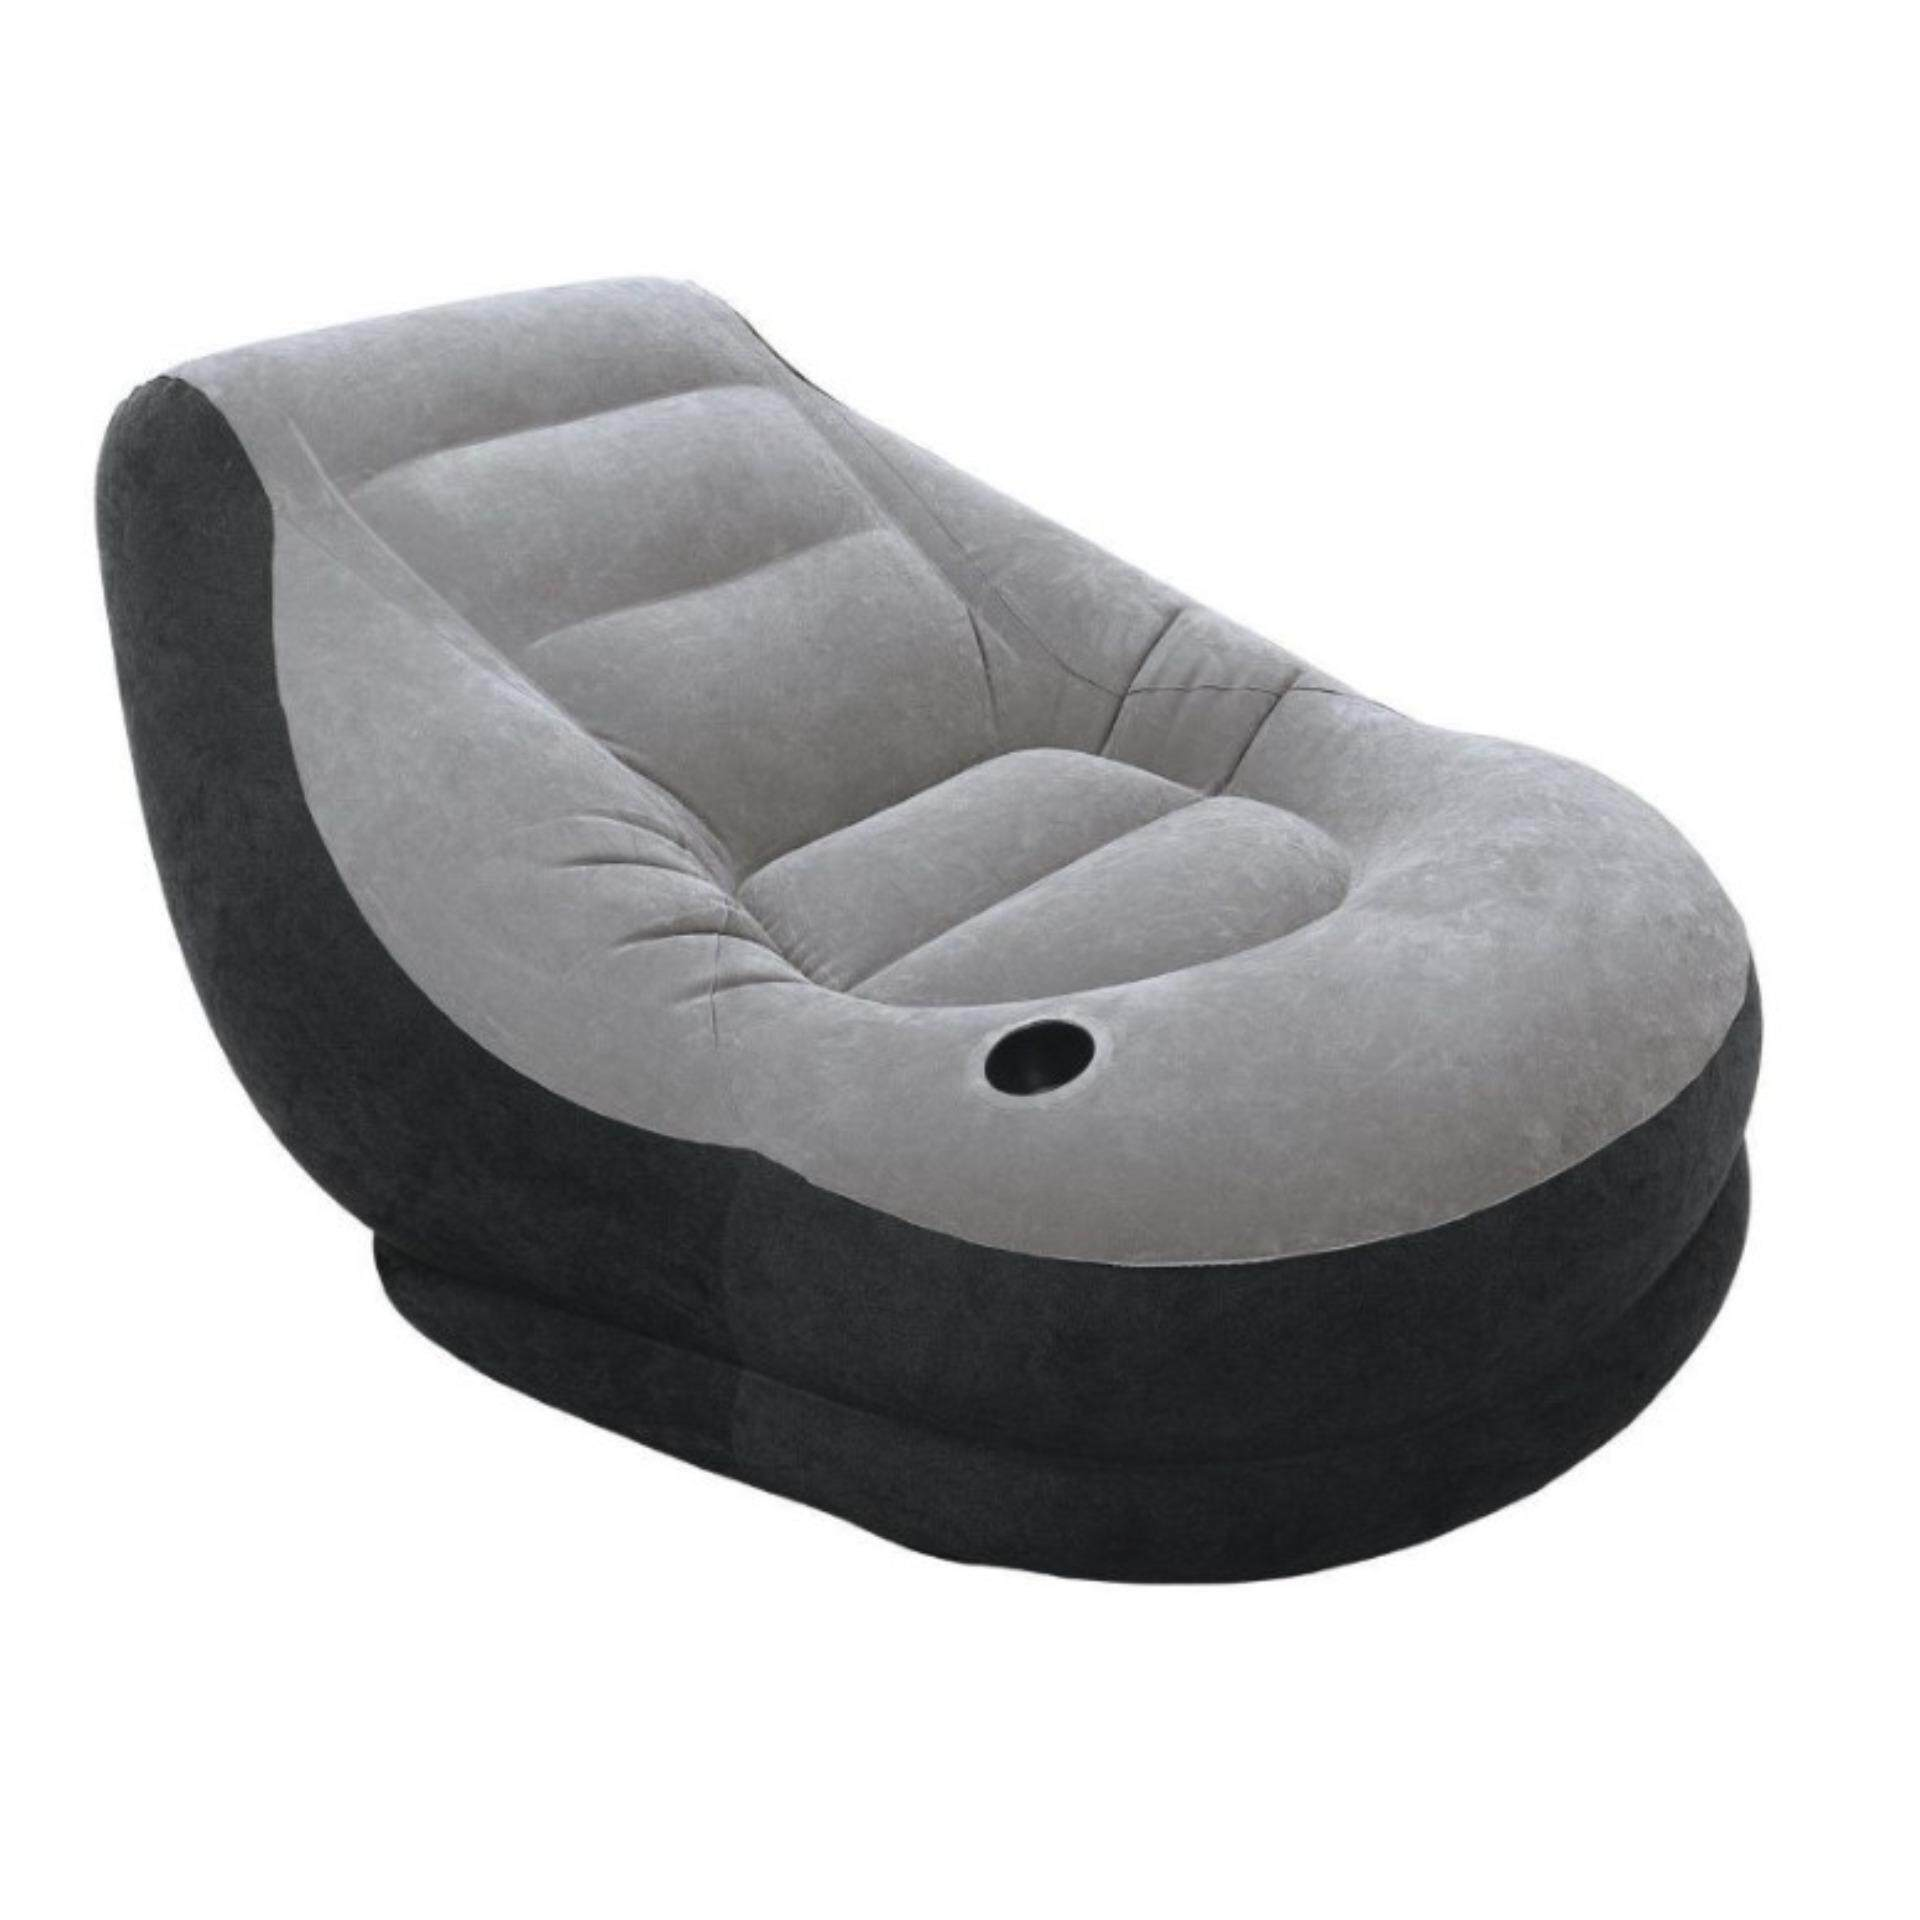 intex inflatable chairs round back chair lounge sofa dorm gaming 68564